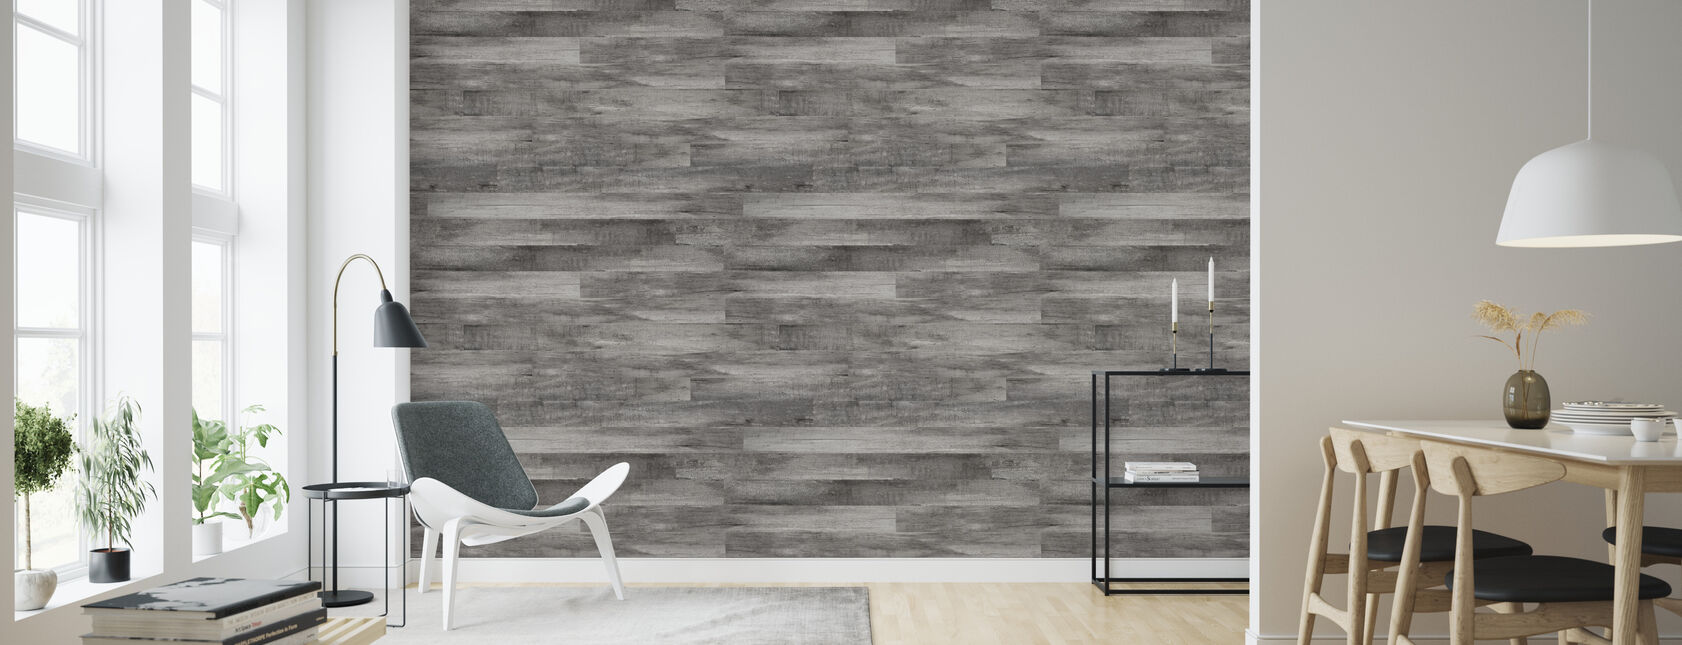 Gray Rustic Wood - Wallpaper - Living Room